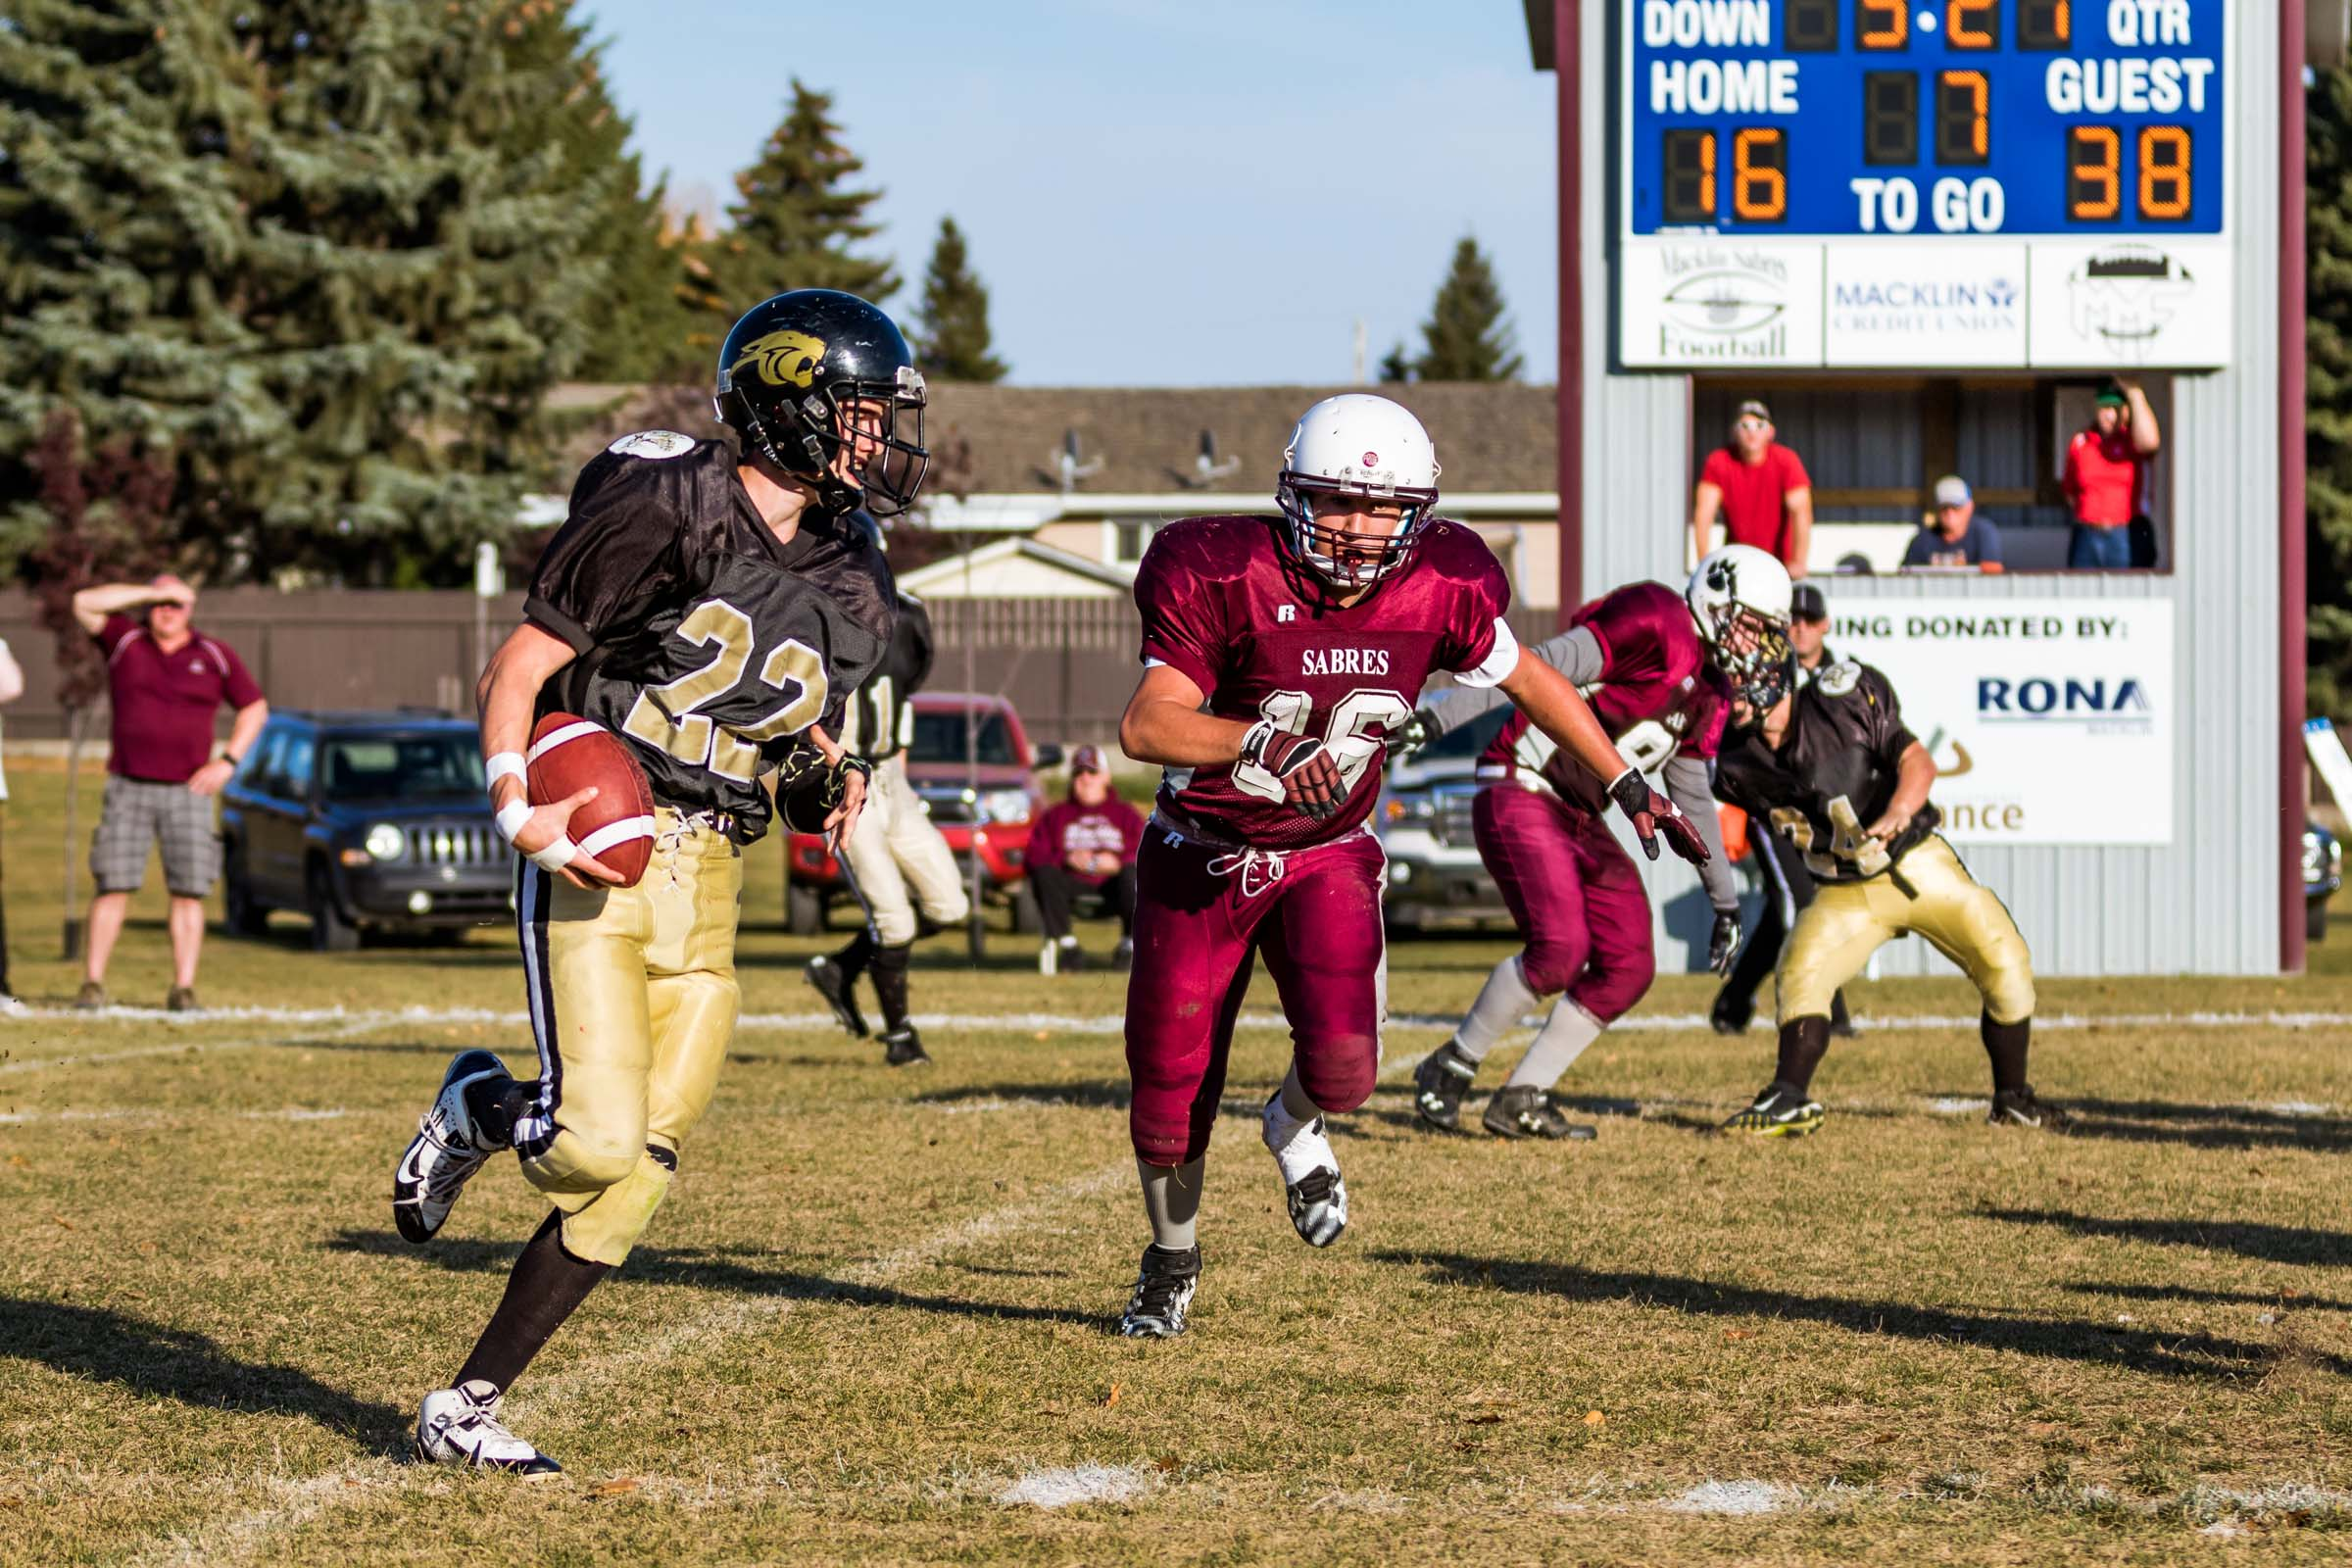 0188_macklinsabres_haguepanthers_football_September 30, 2016.jpg